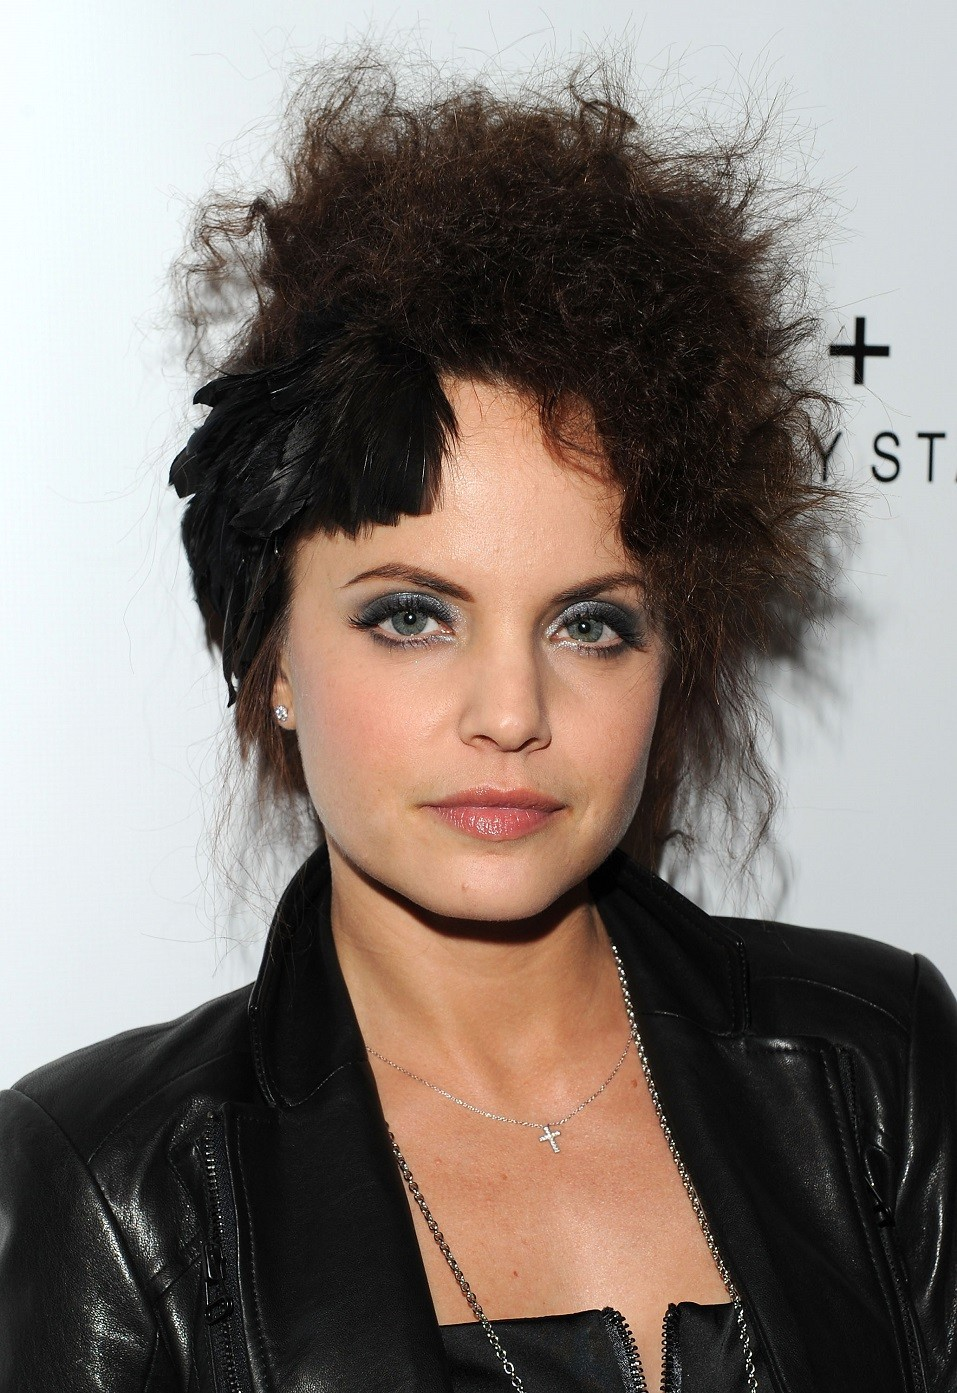 Actress Mena Suvari at the alice + olivia Fashion Week presentation